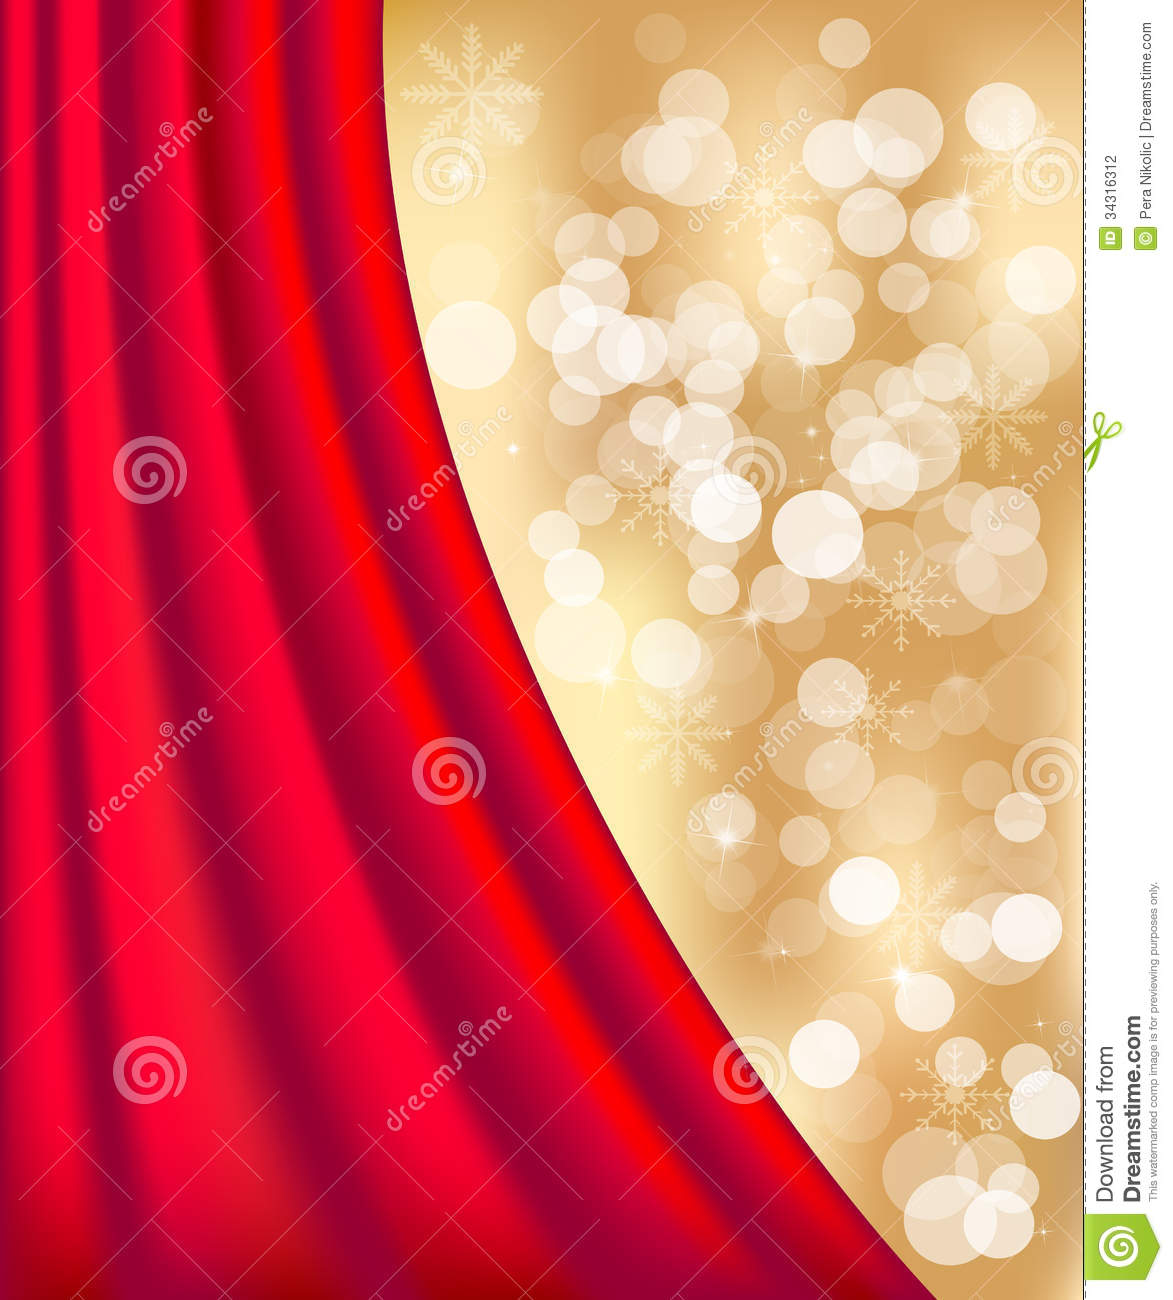 Gold defocused lights background stock photography image 34316312